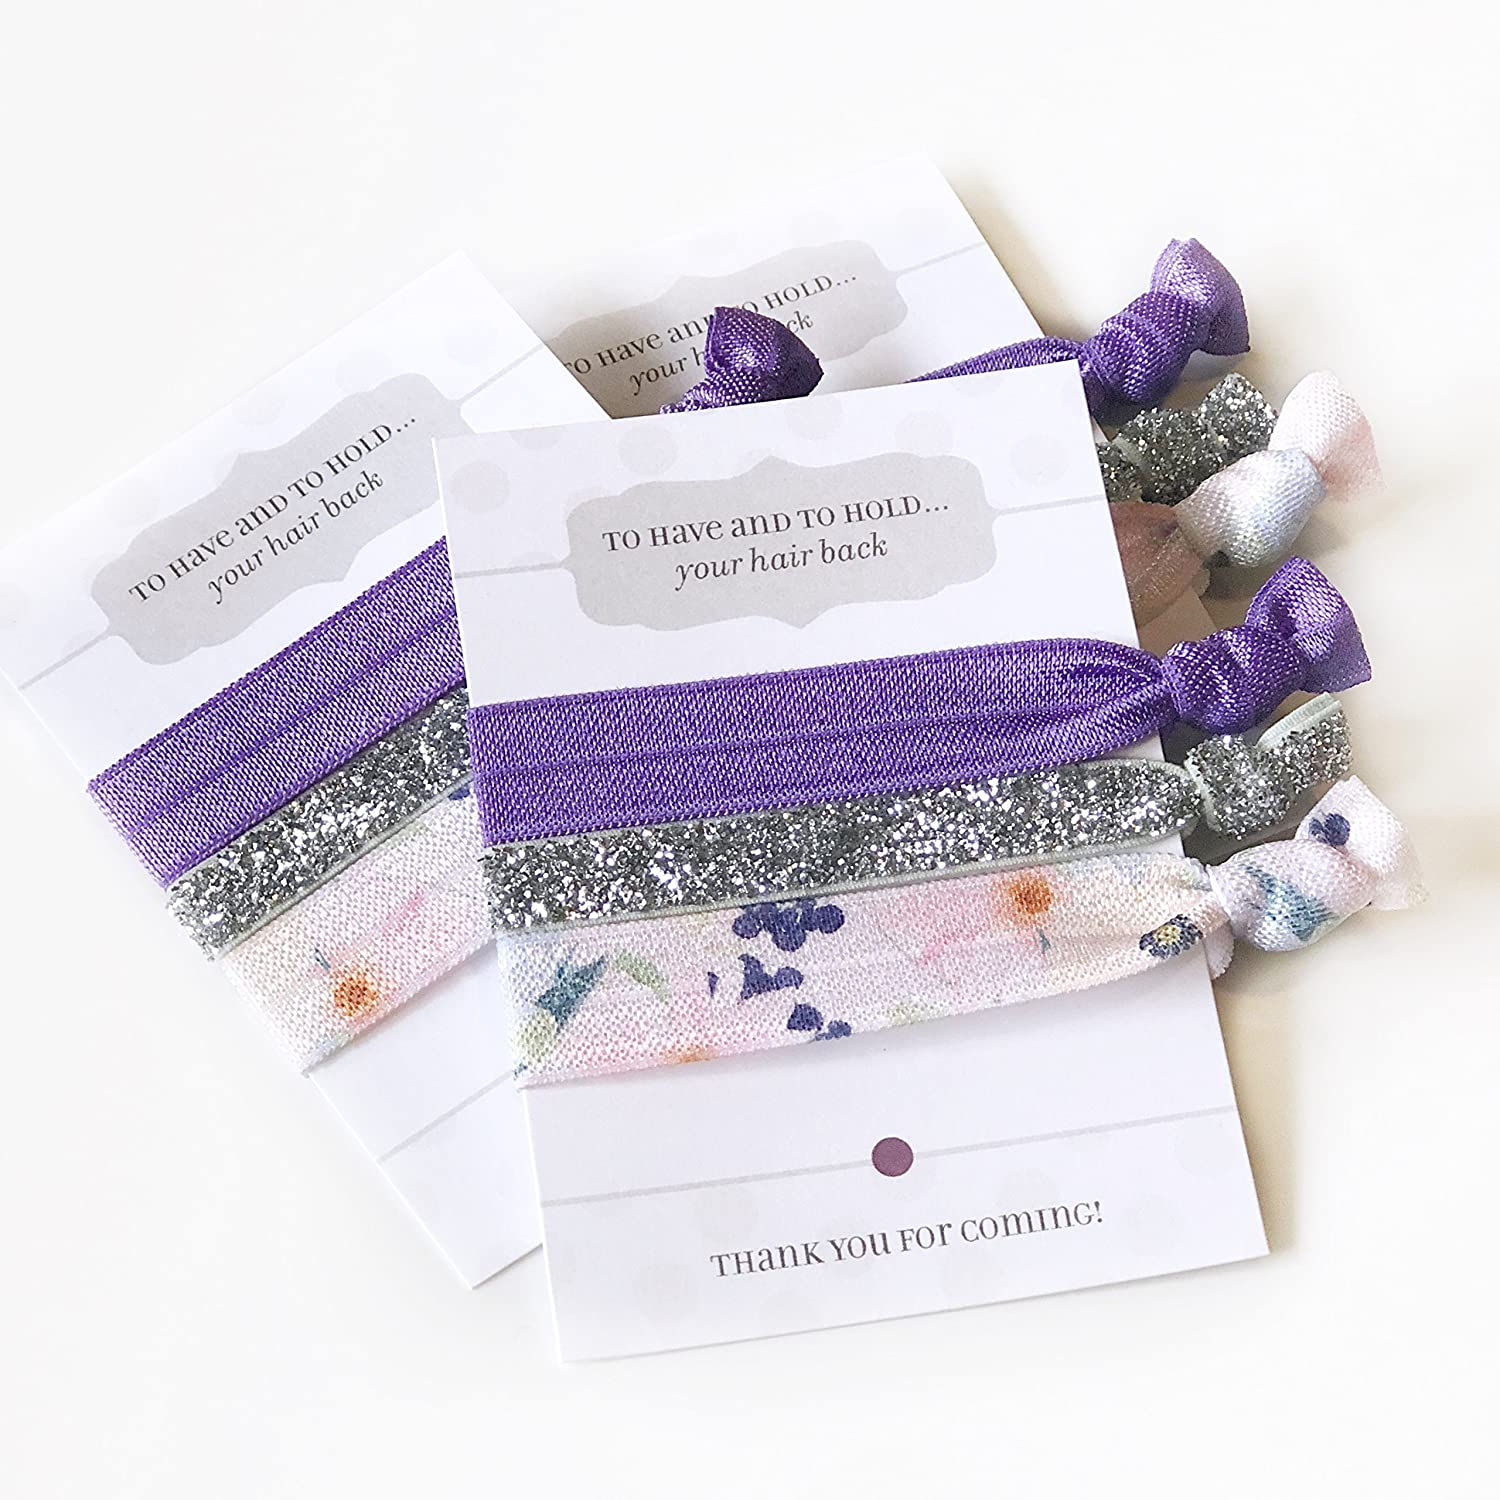 Purple Floral Bridal Shower and Bachelorette Party Favours - Hair Ties (5 Pack)